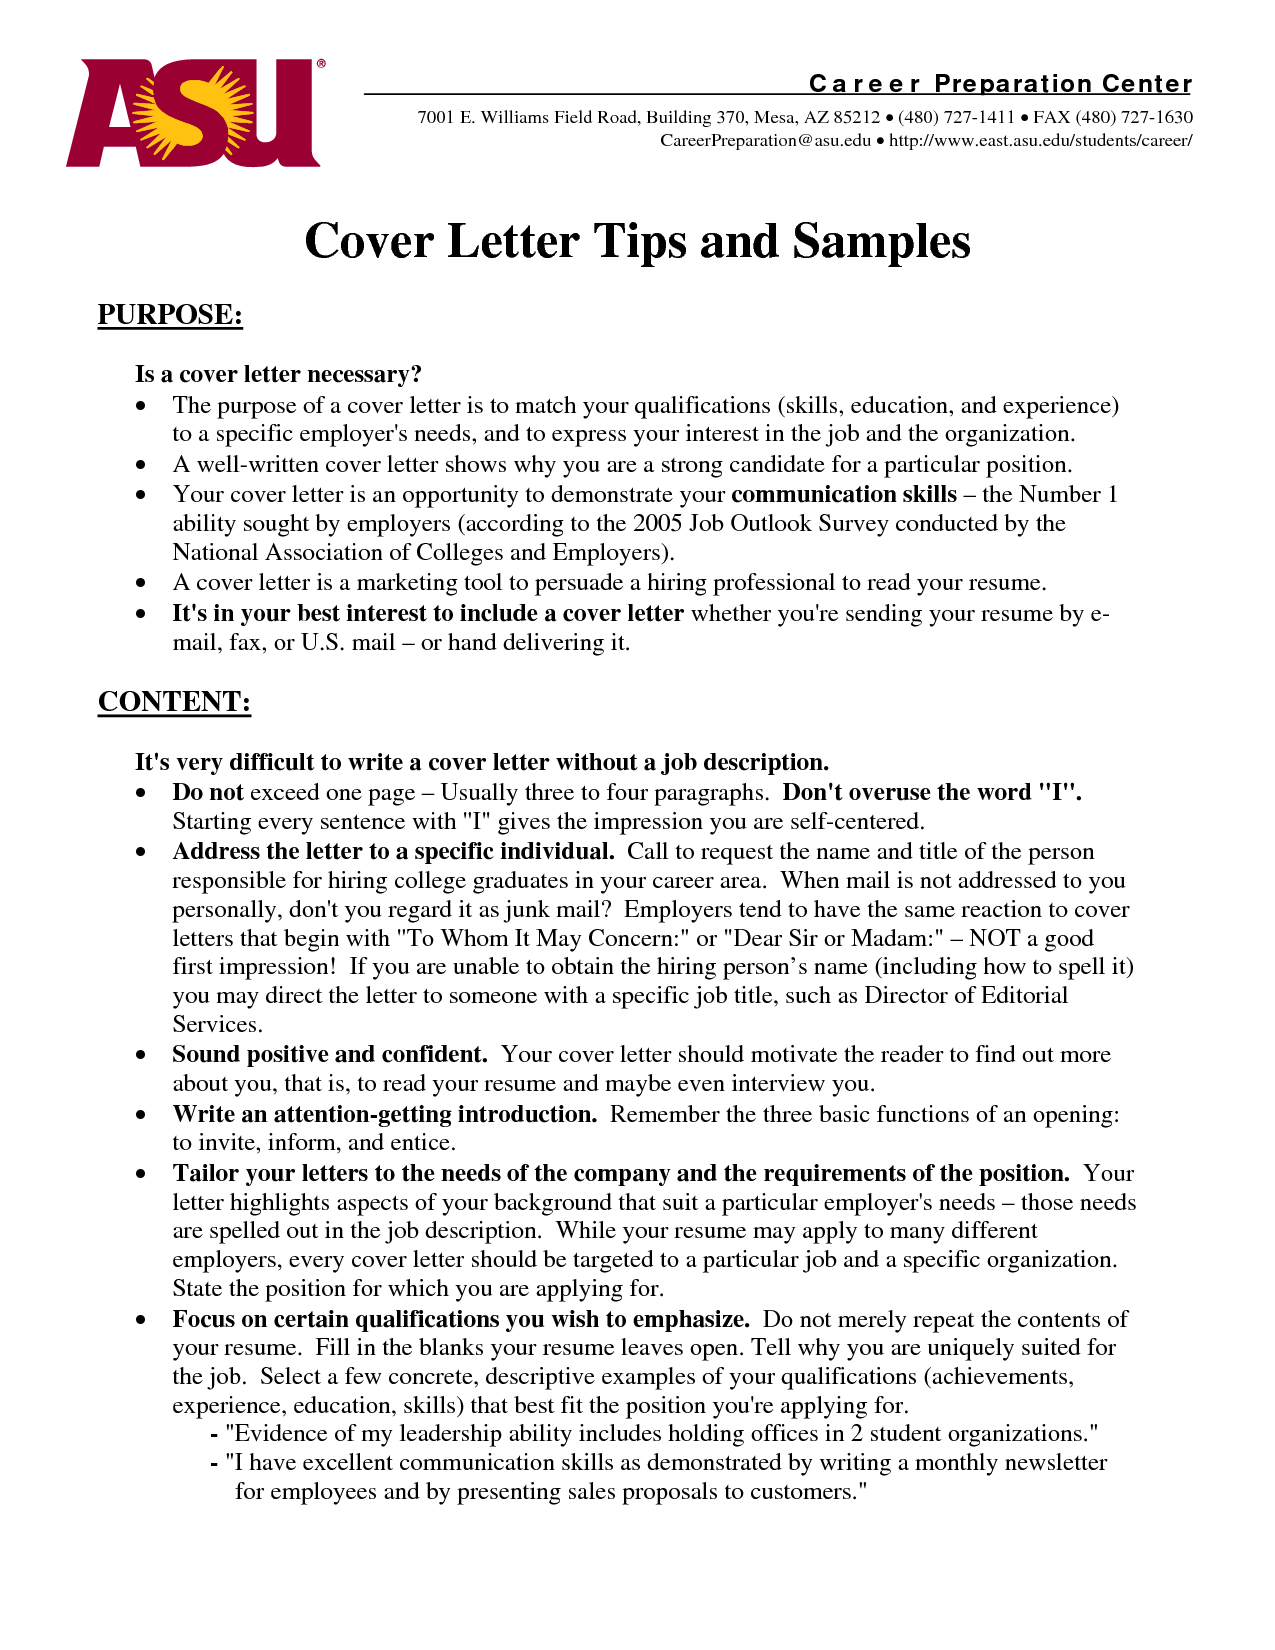 Jimmy Sweeney Resumes Jimmy Sweeney Cover Letter Examples Quality Google Search